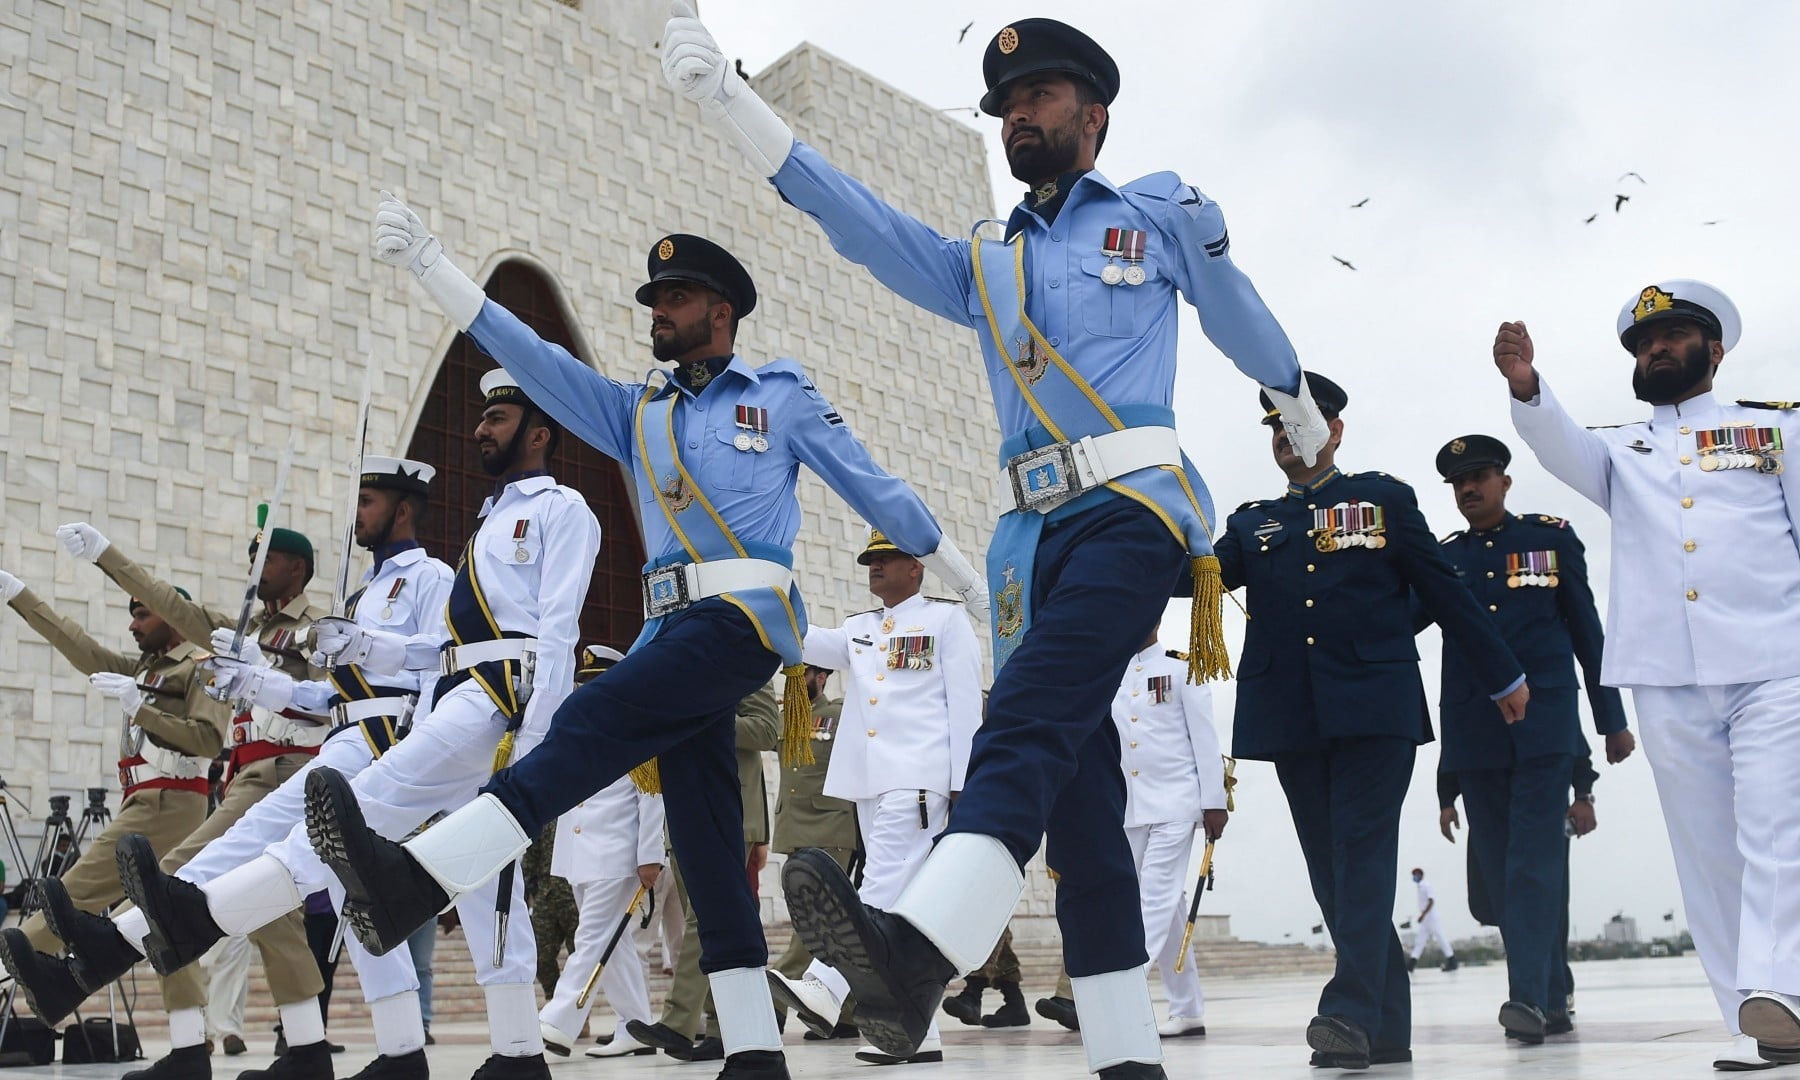 Pakistan's Army, Navy and Air Force soldiers march at Quaid-i-Azam's mausoleum during Independence Day celebrations in Karachi on August 14. — AFP